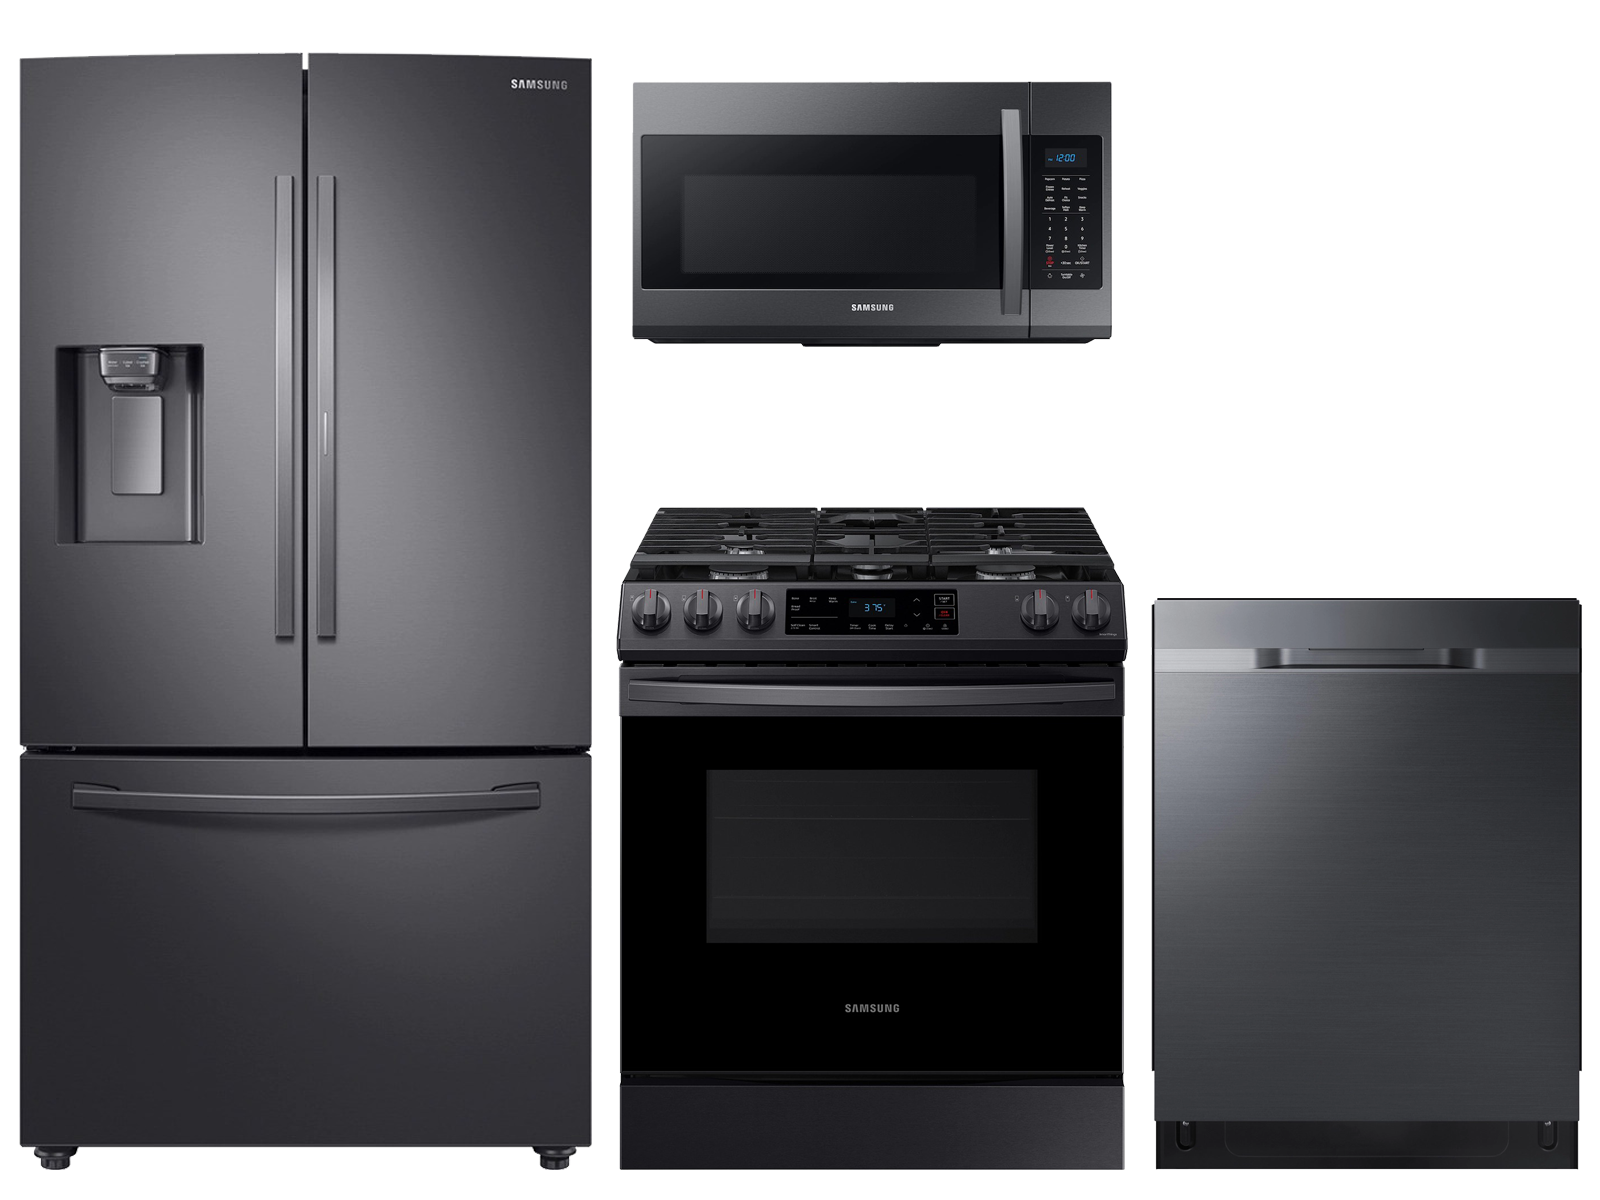 28 cu. ft. full-depth 3-door refrigerator, gas range, microwave and 48 dBA dishwasher package